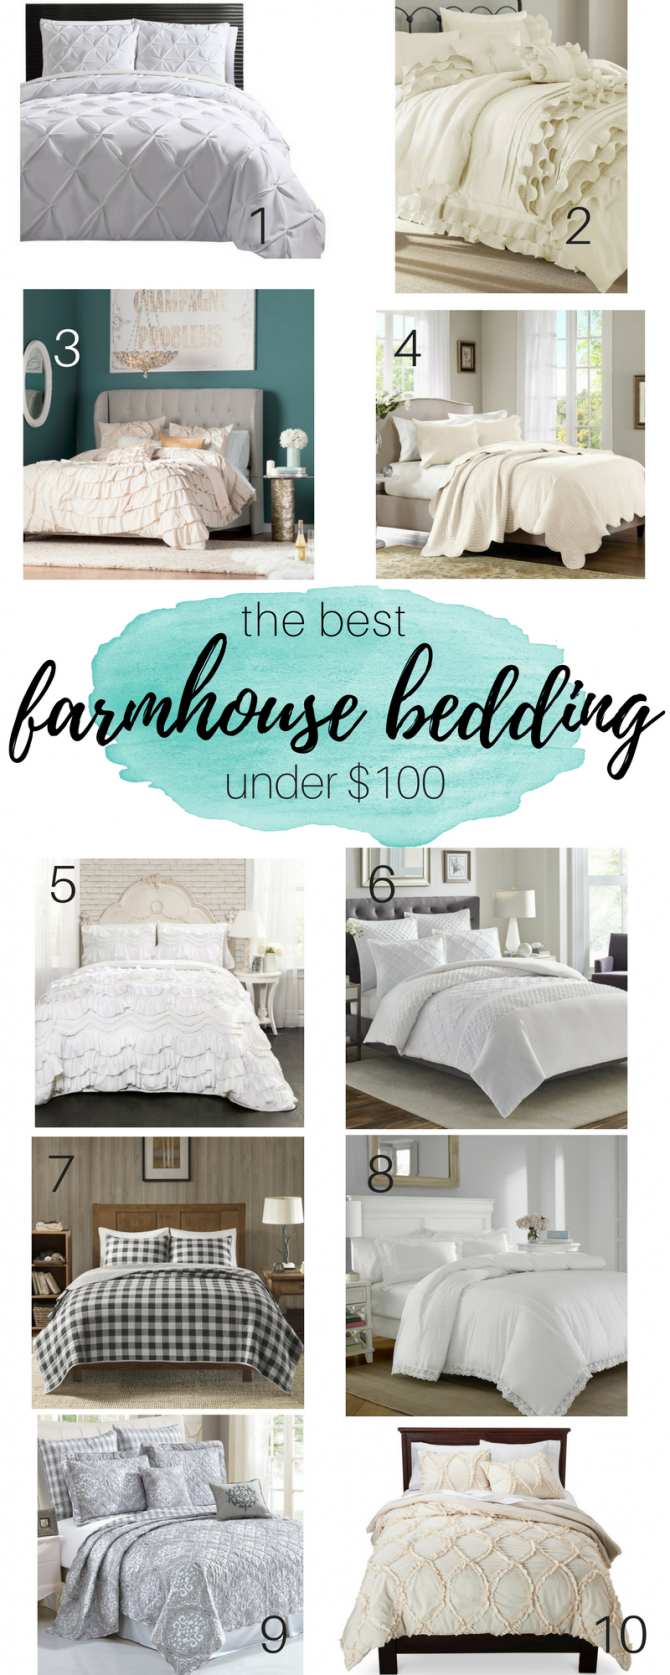 Farmhouse Bedding For under $100